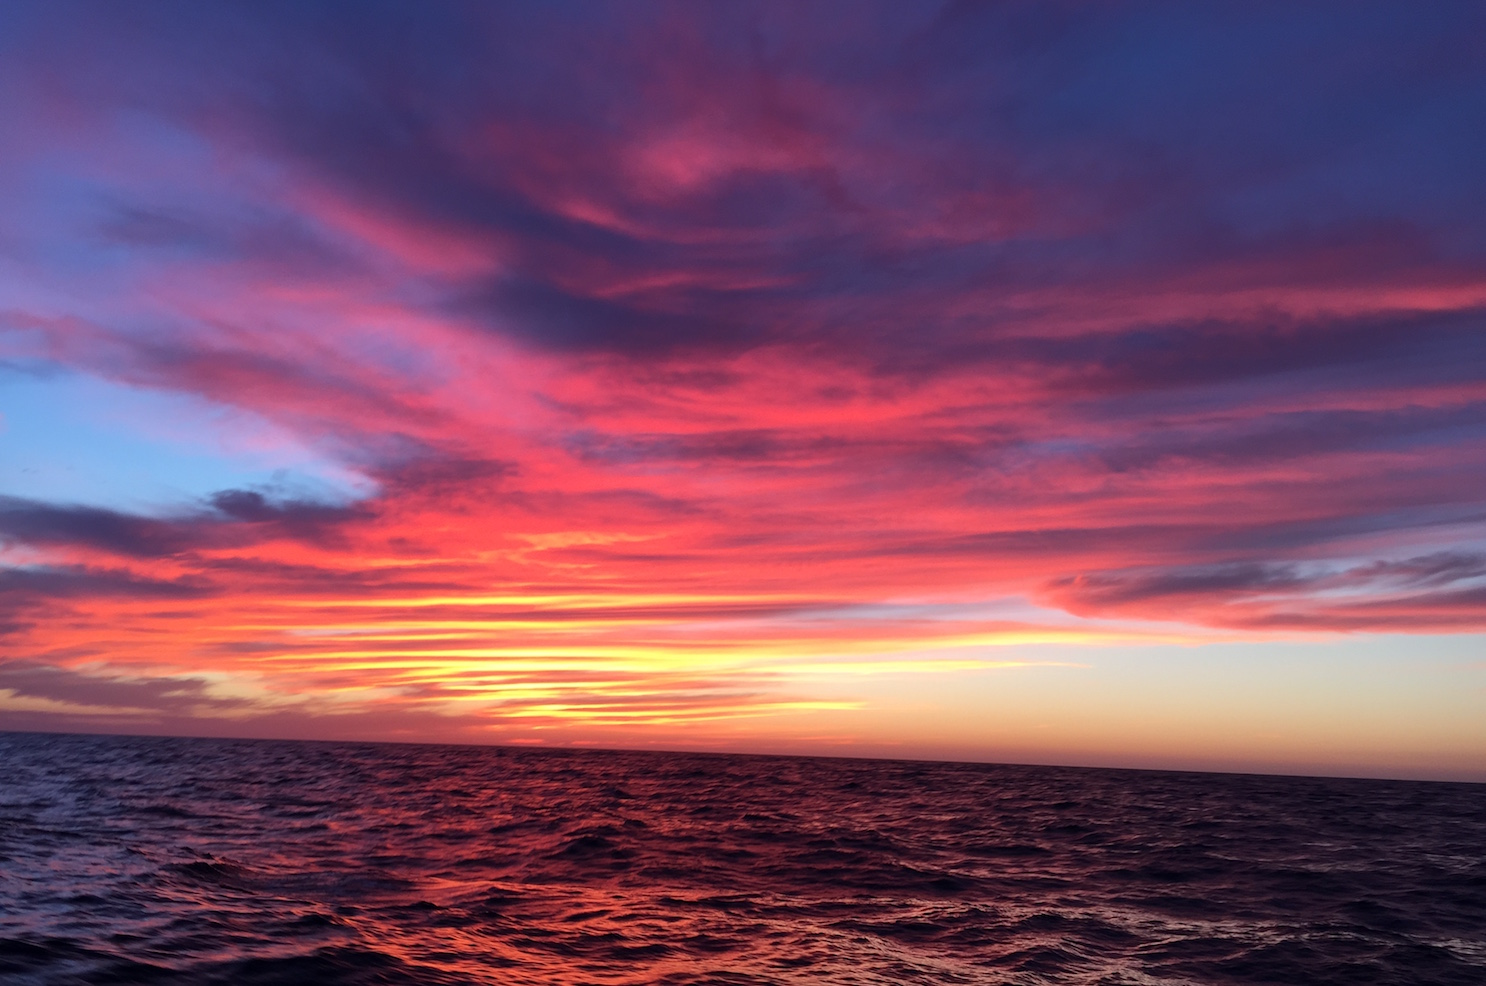 Offshore California sunset (photo by Bruce V. Bigelow)